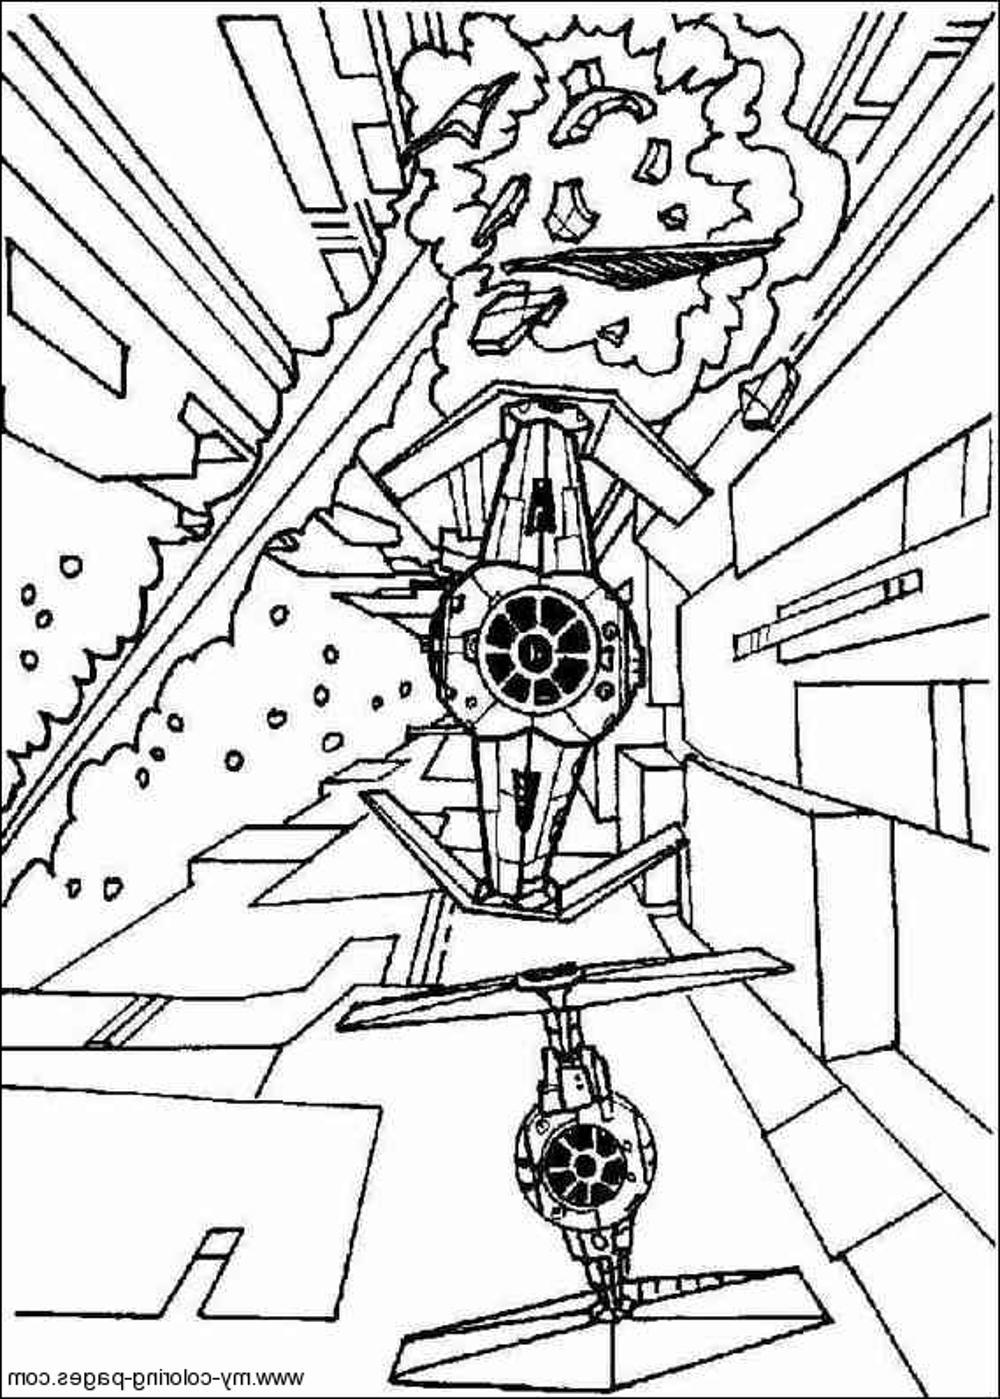 free lego star wars coloring pages lego star wars coloring pages to download and print for free lego star wars coloring pages free